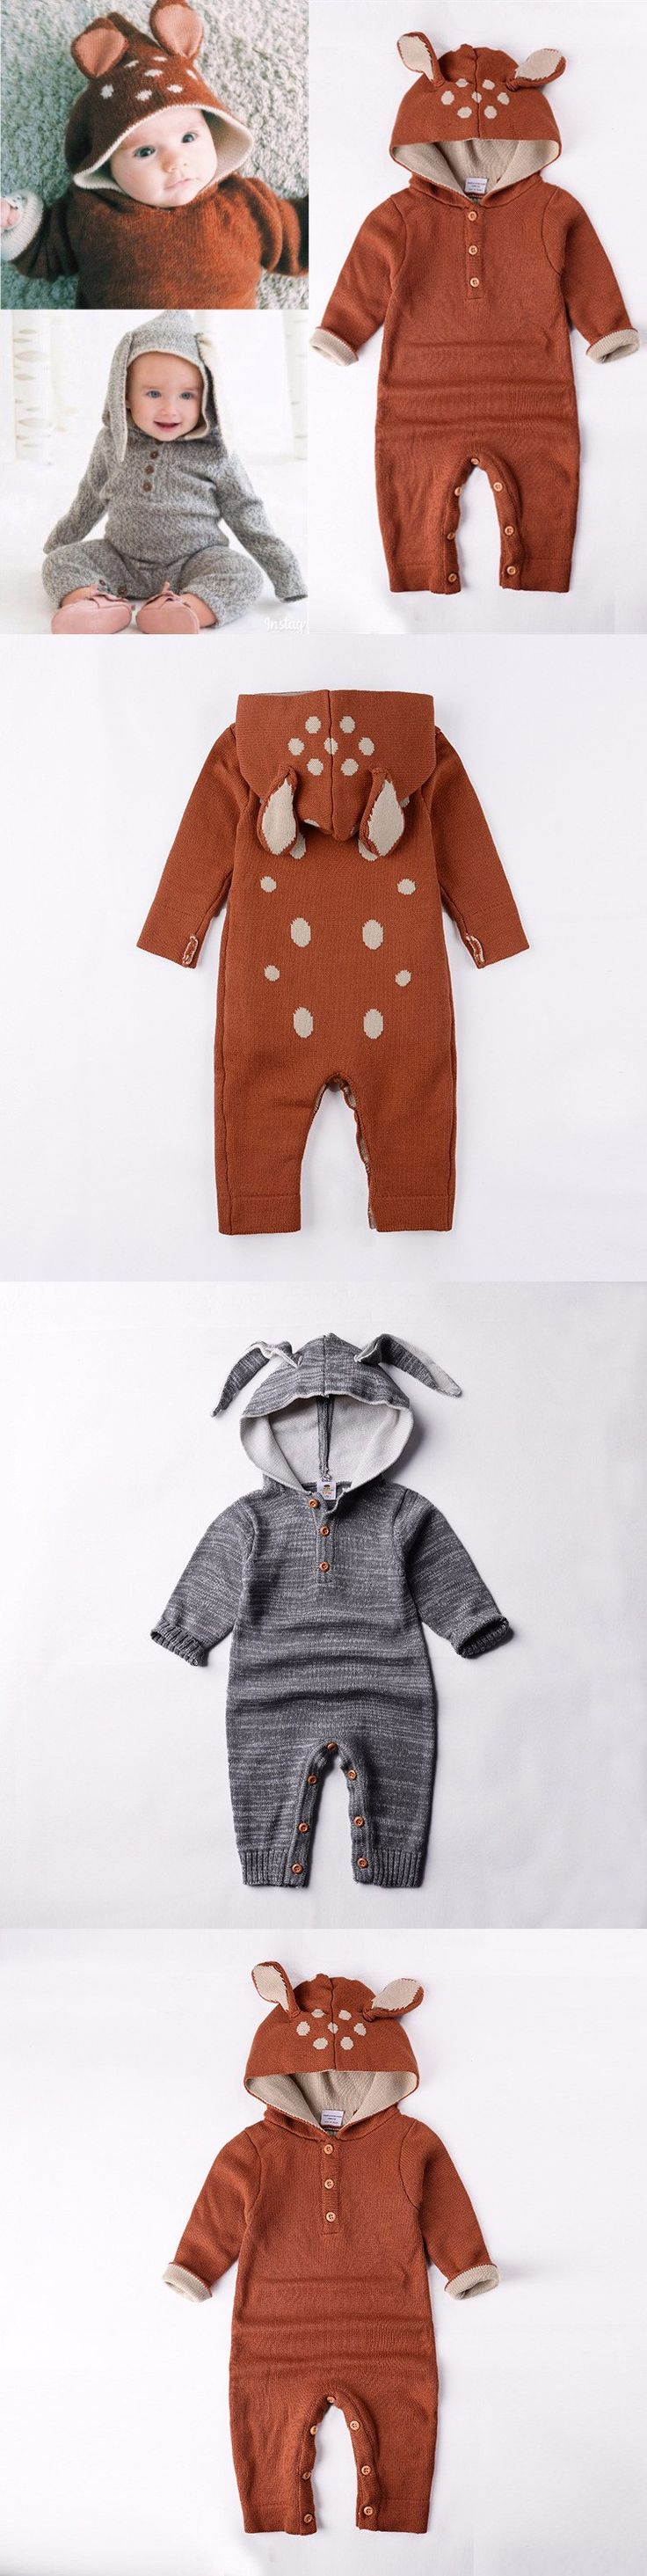 Wholesale 2016 Autumn Knitted baby boys girls clothes set long-sleeve Reindeer Newborn baby Romper jumpsuit roupas de bebe